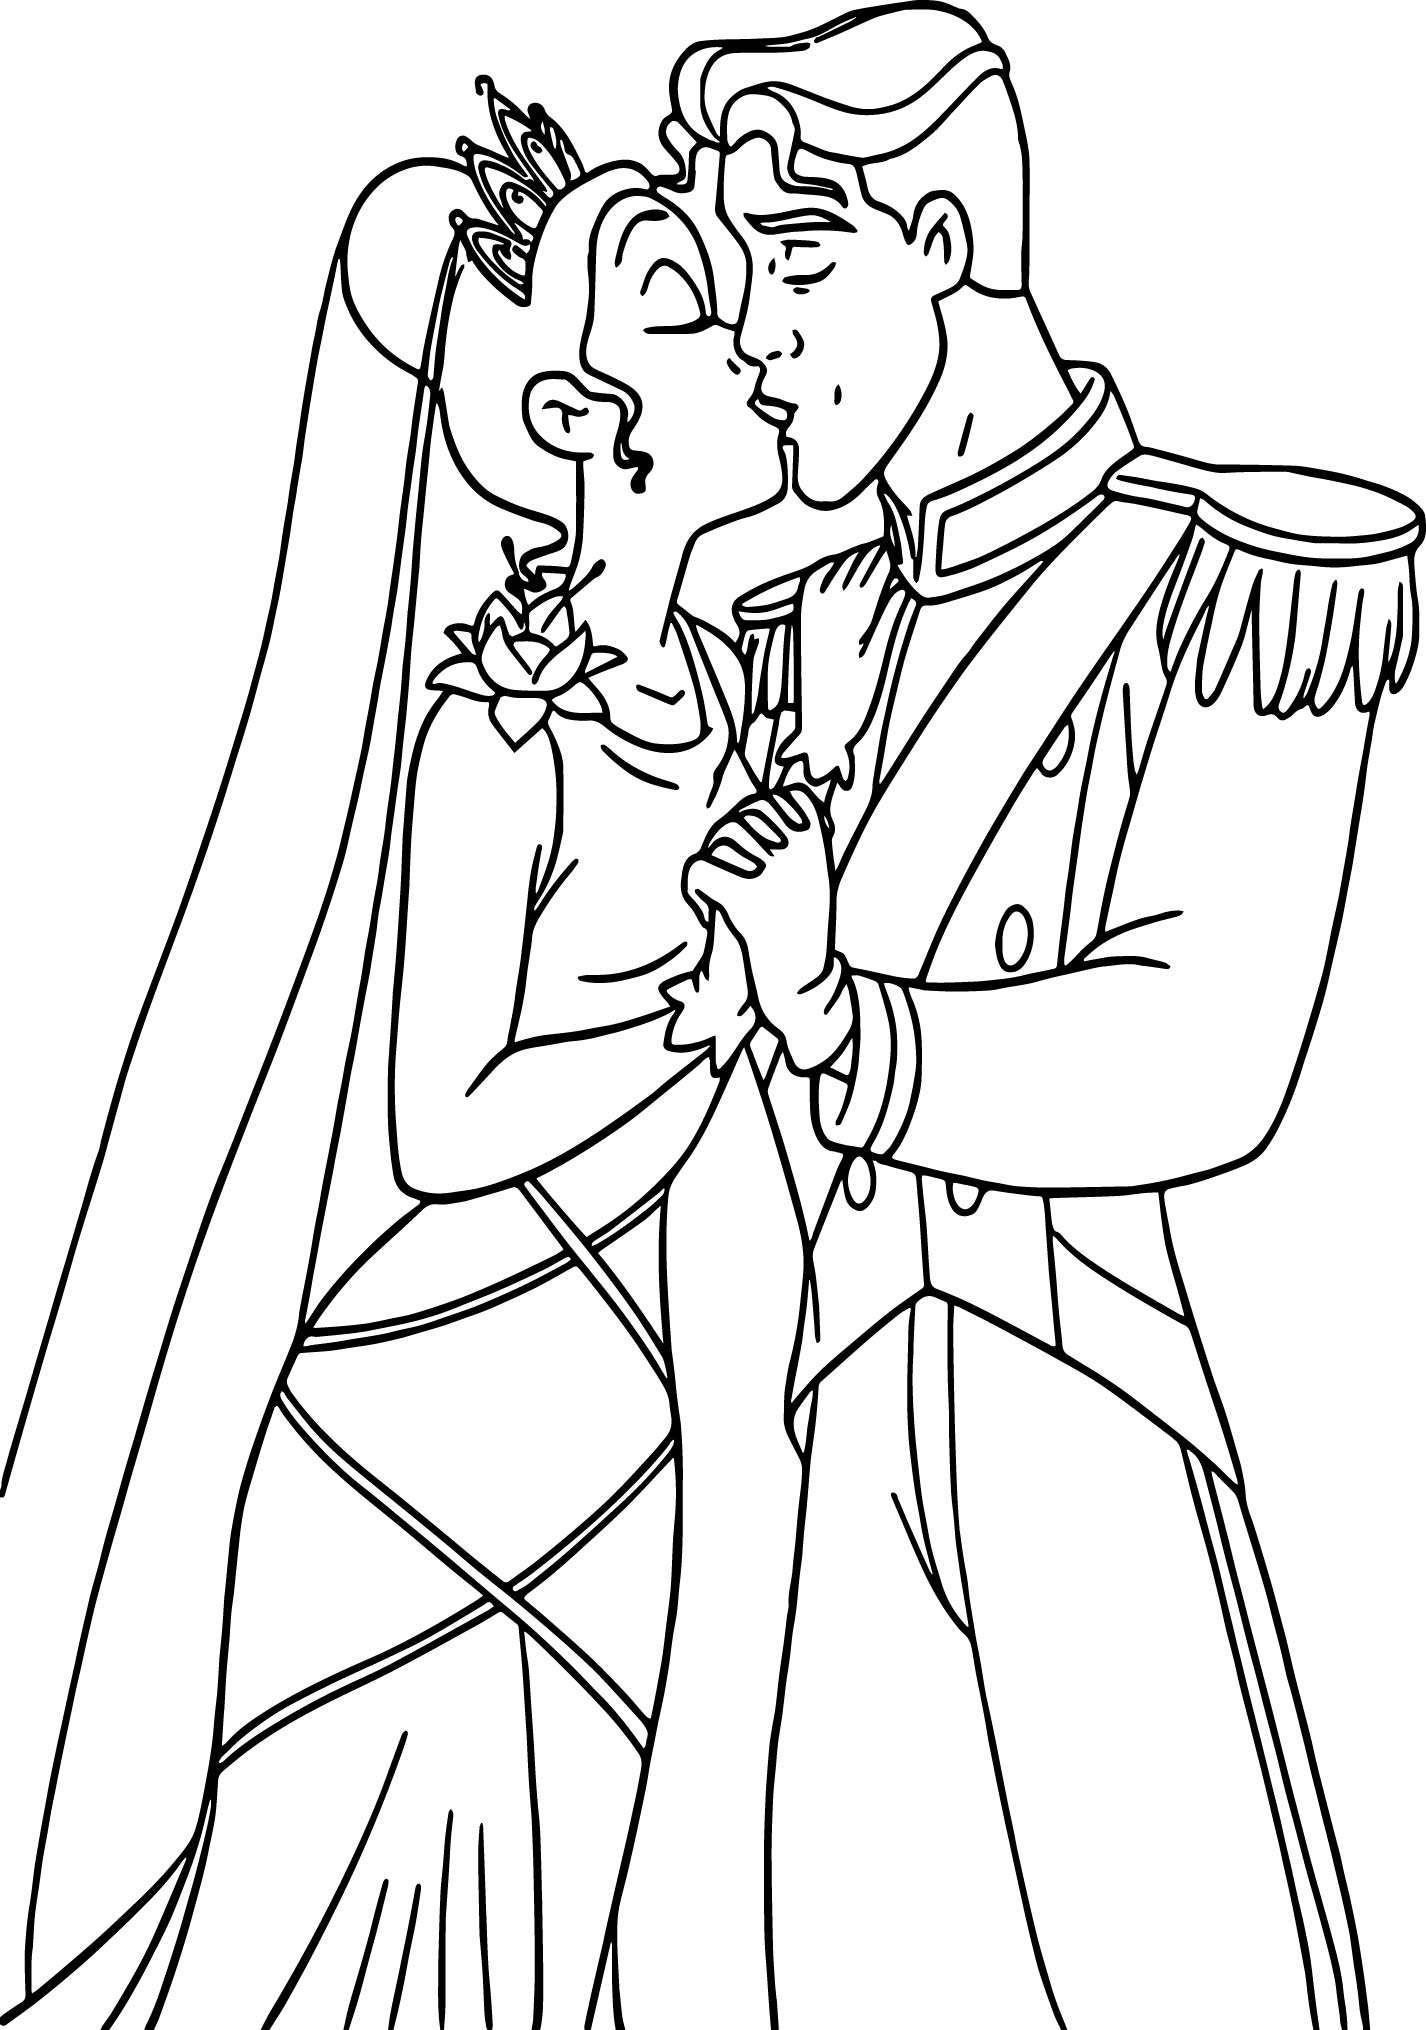 tiana naveen wedding kiss coloring page